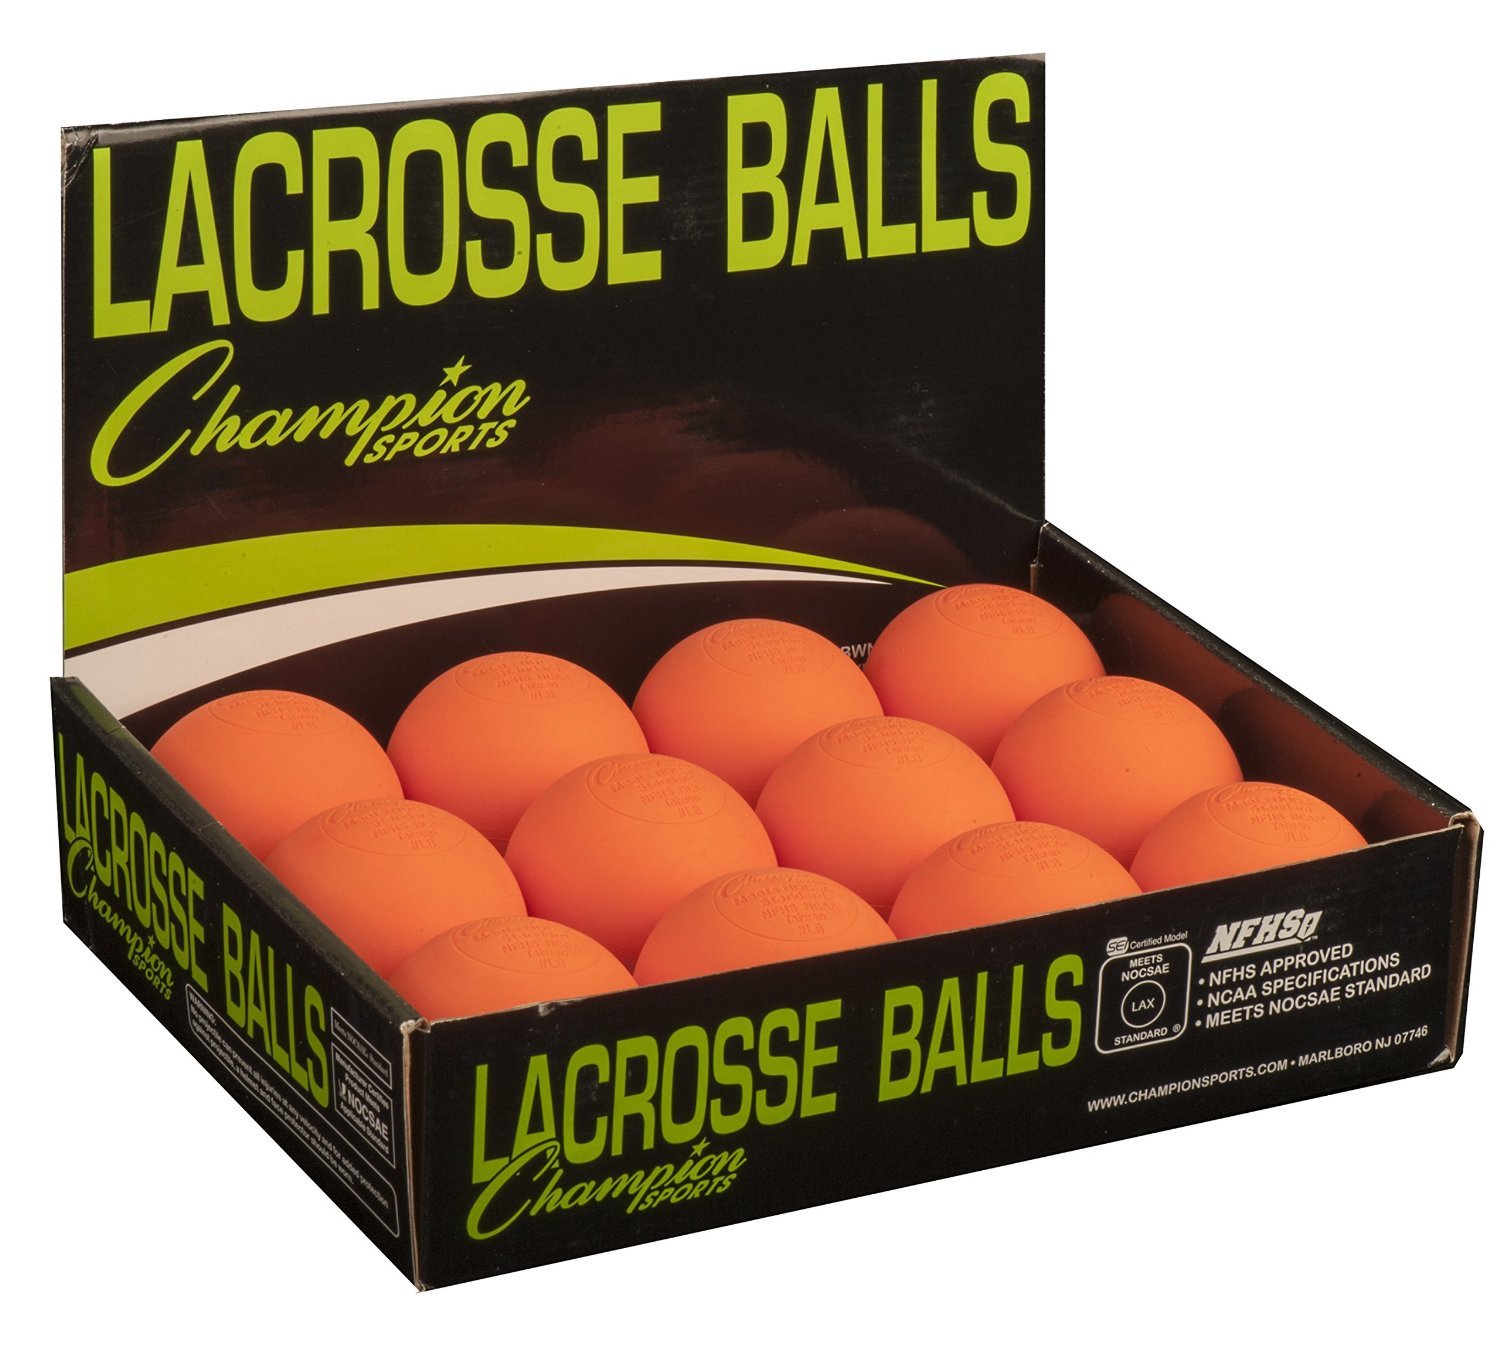 Factory-direct lacrosse balls with SEI&NFHS standard